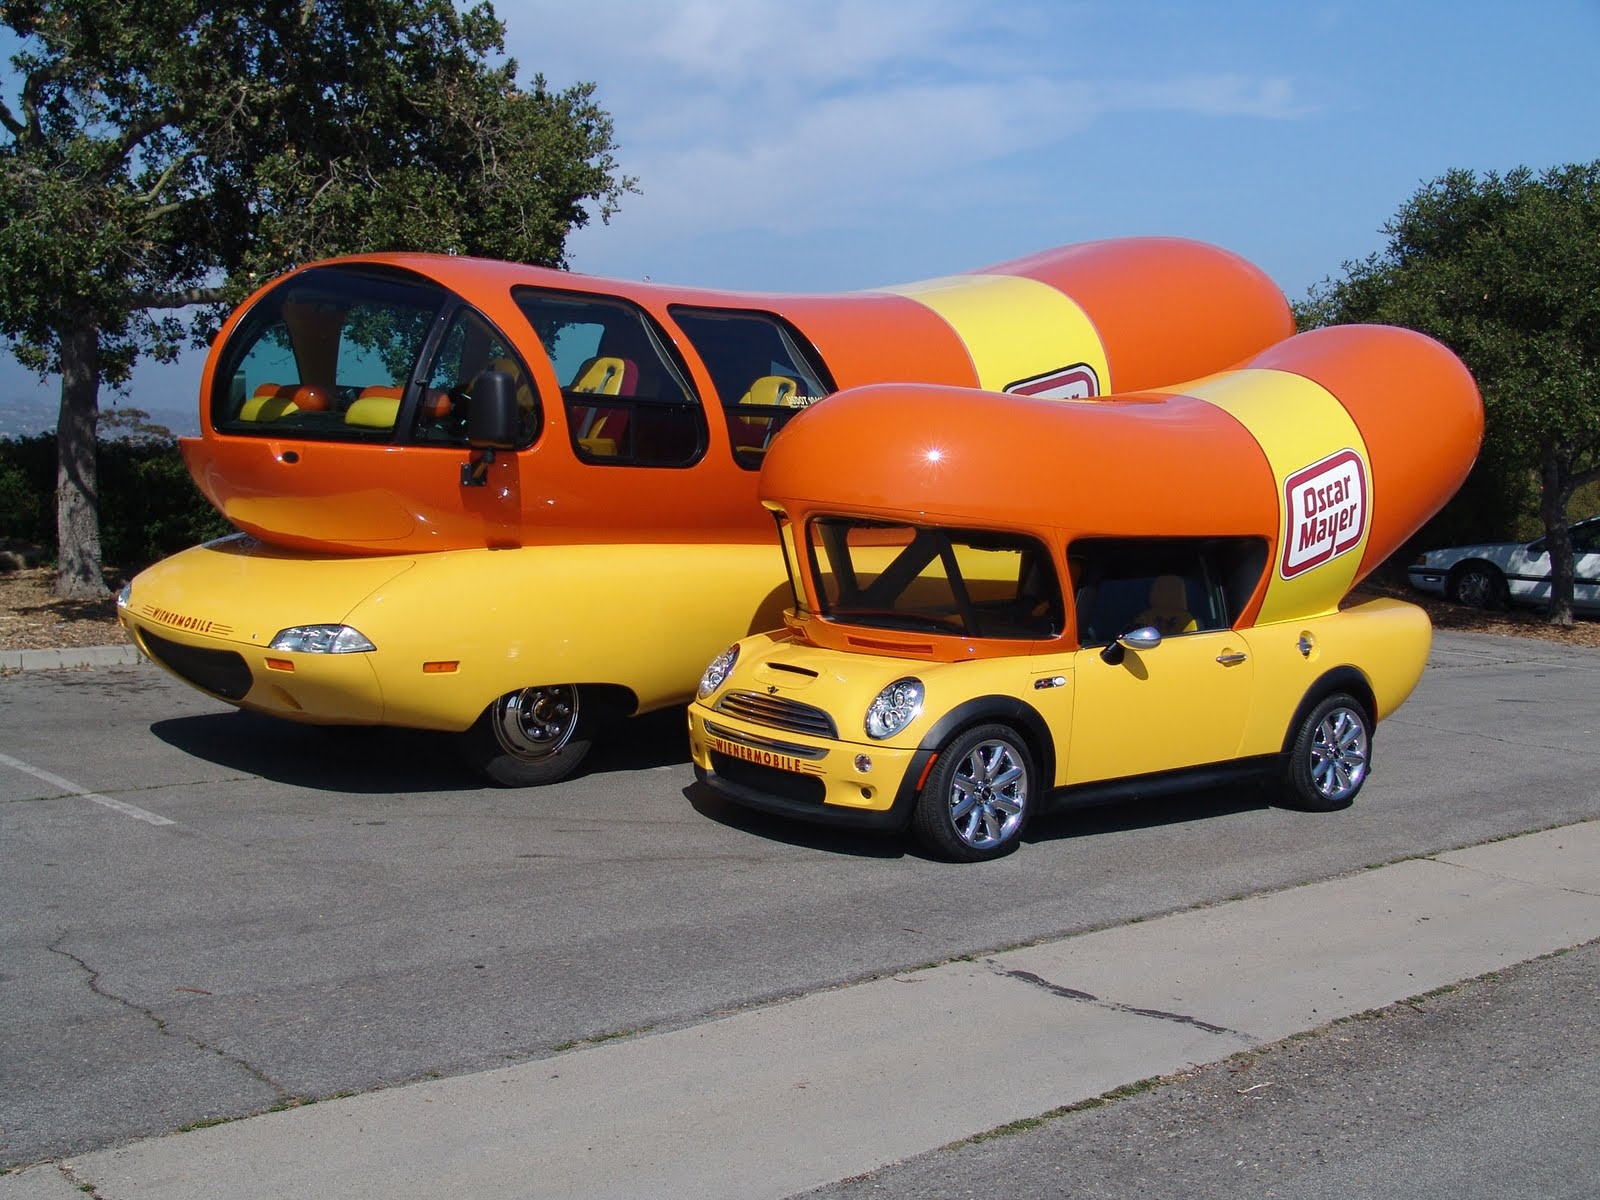 Winerdrone Hot Dog Oscar Mayer Drone together with 24287248 further 8546723491 in addition Show Picture furthermore Hot Dog Car. on oscar mayer wieners